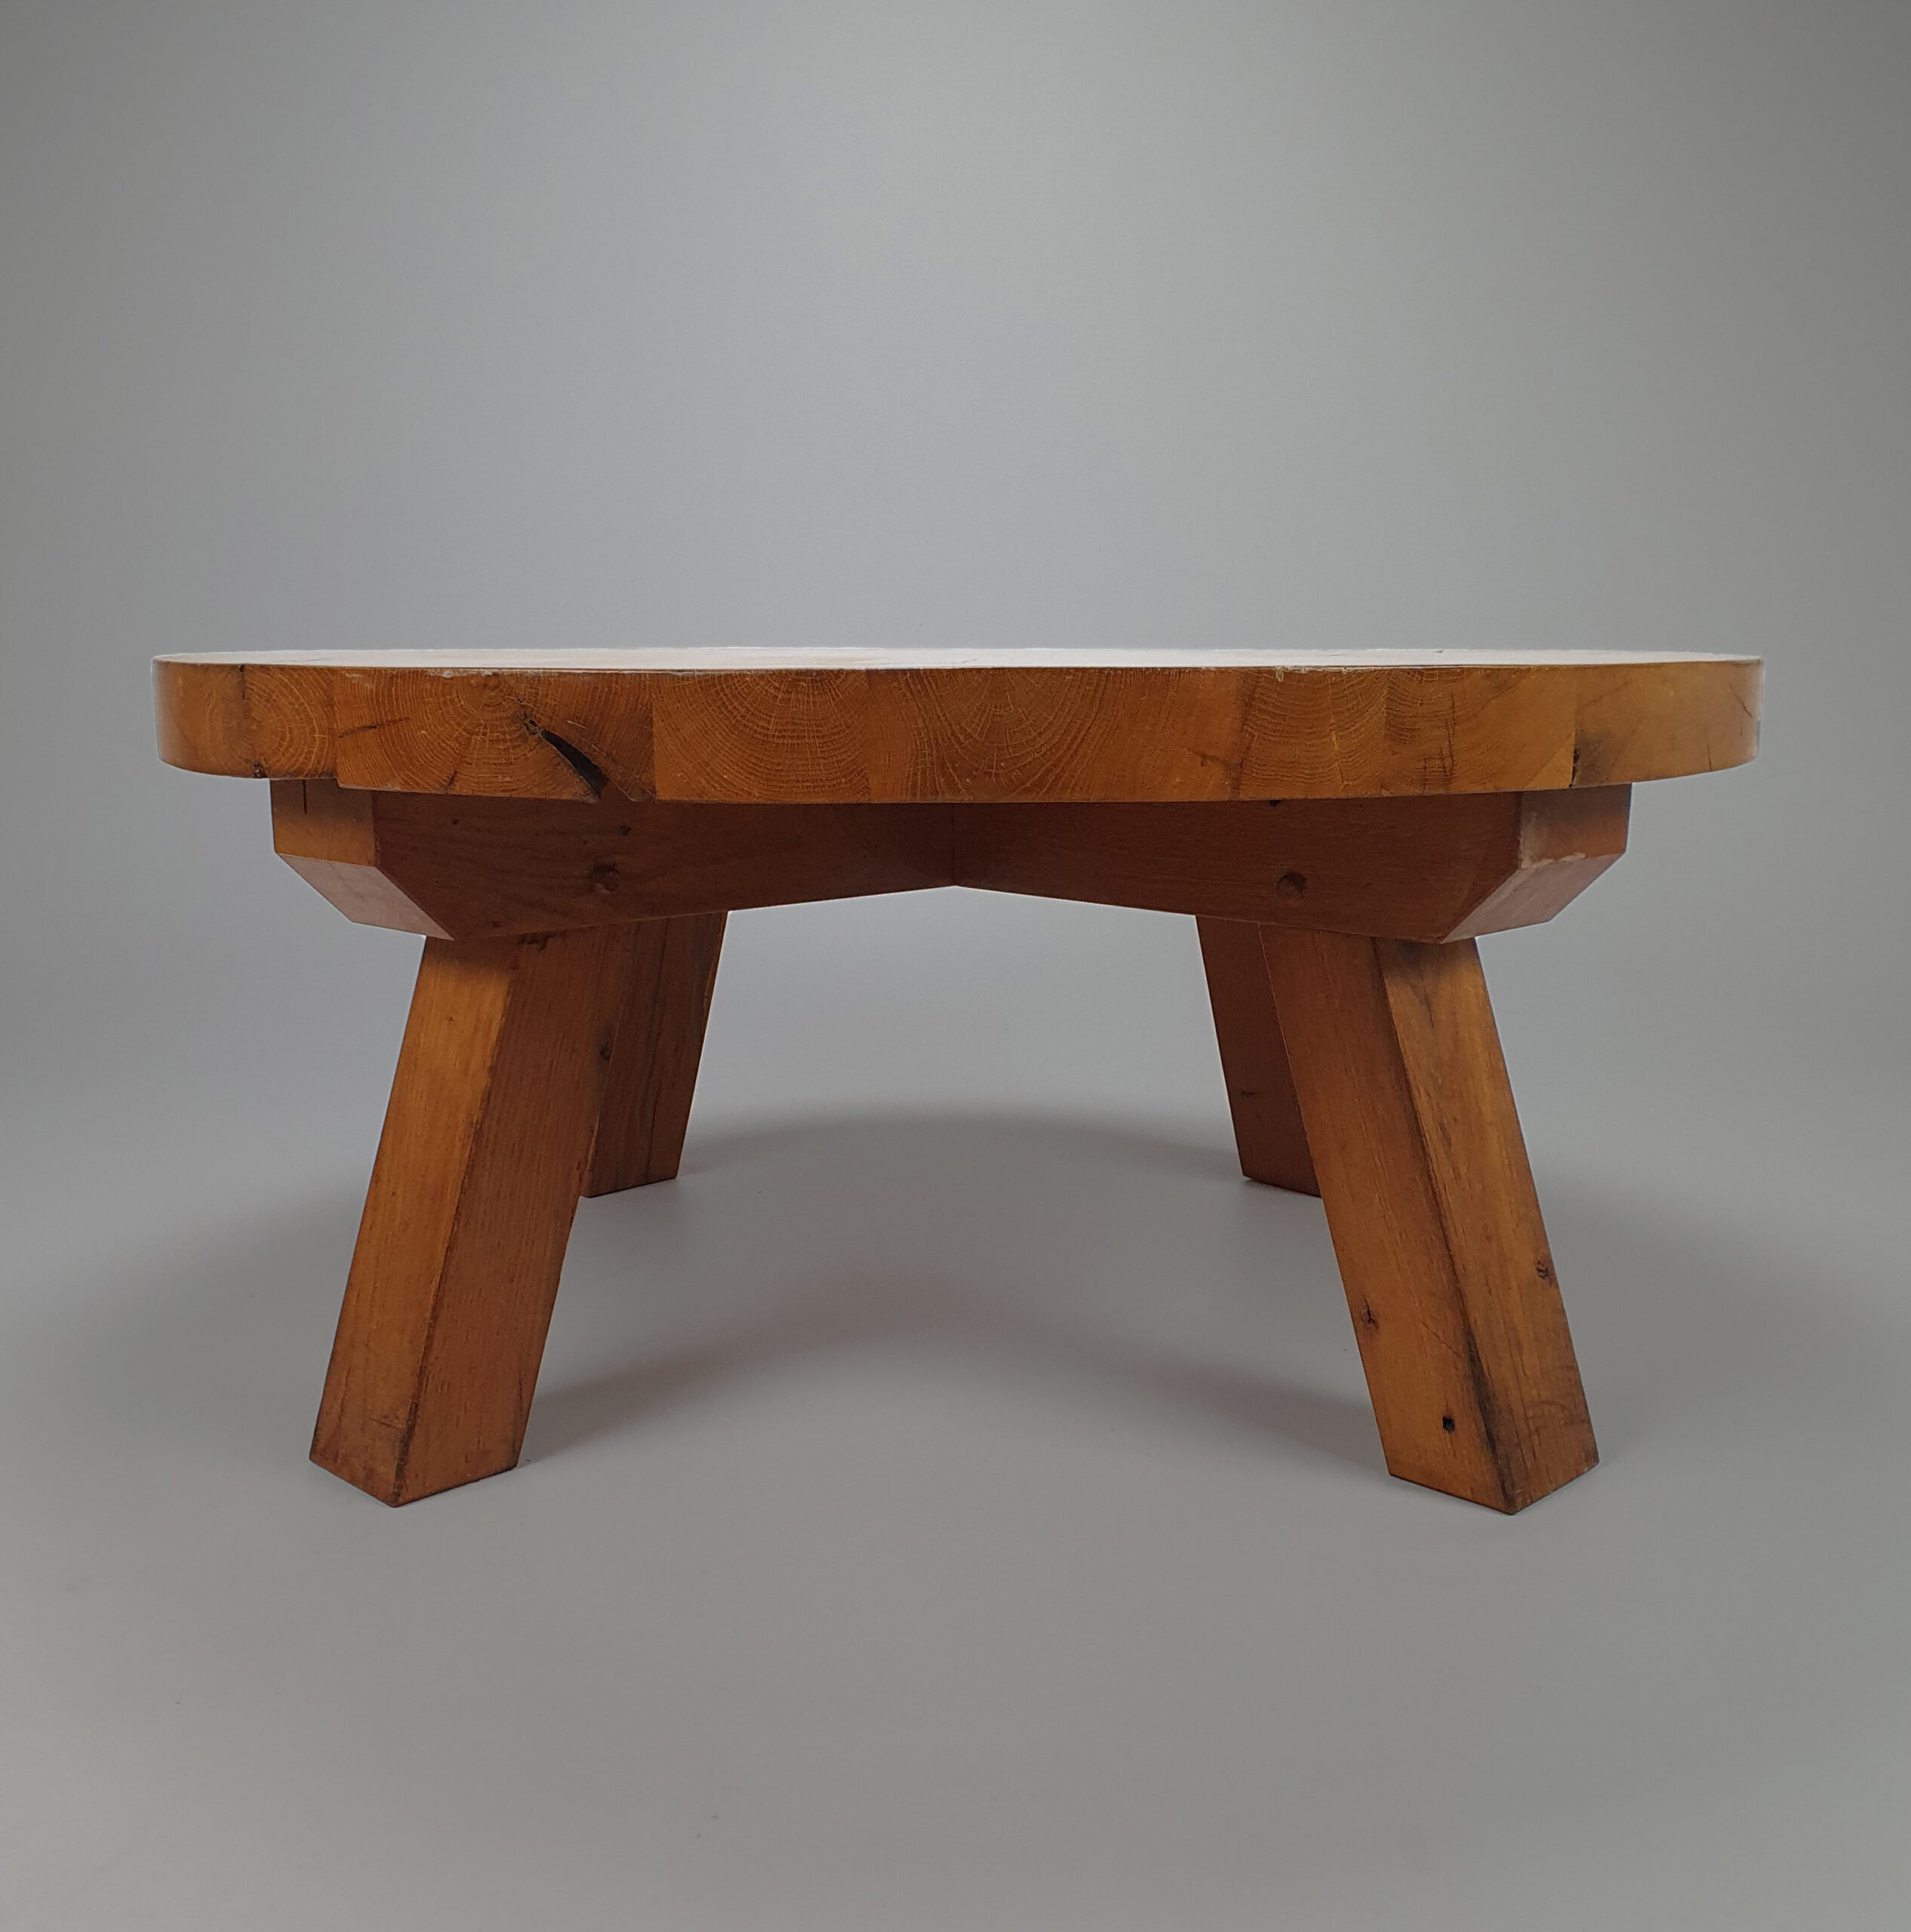 Modernist oak table